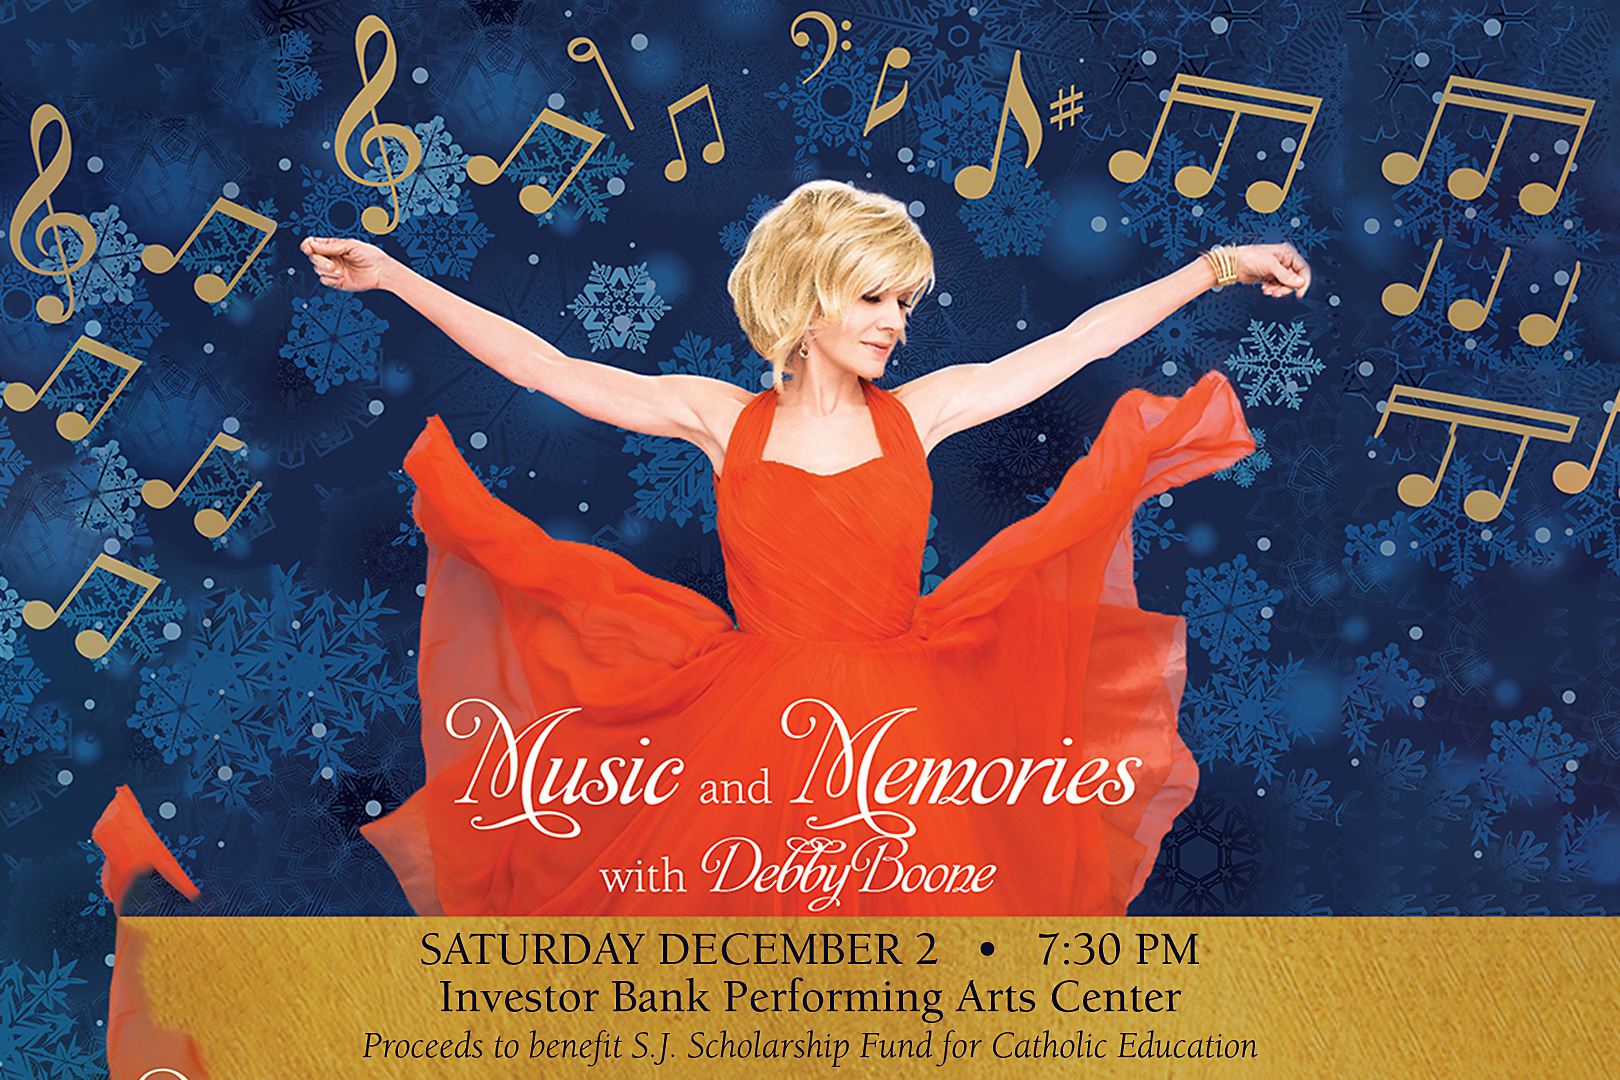 Music and Memories with Debby Boone